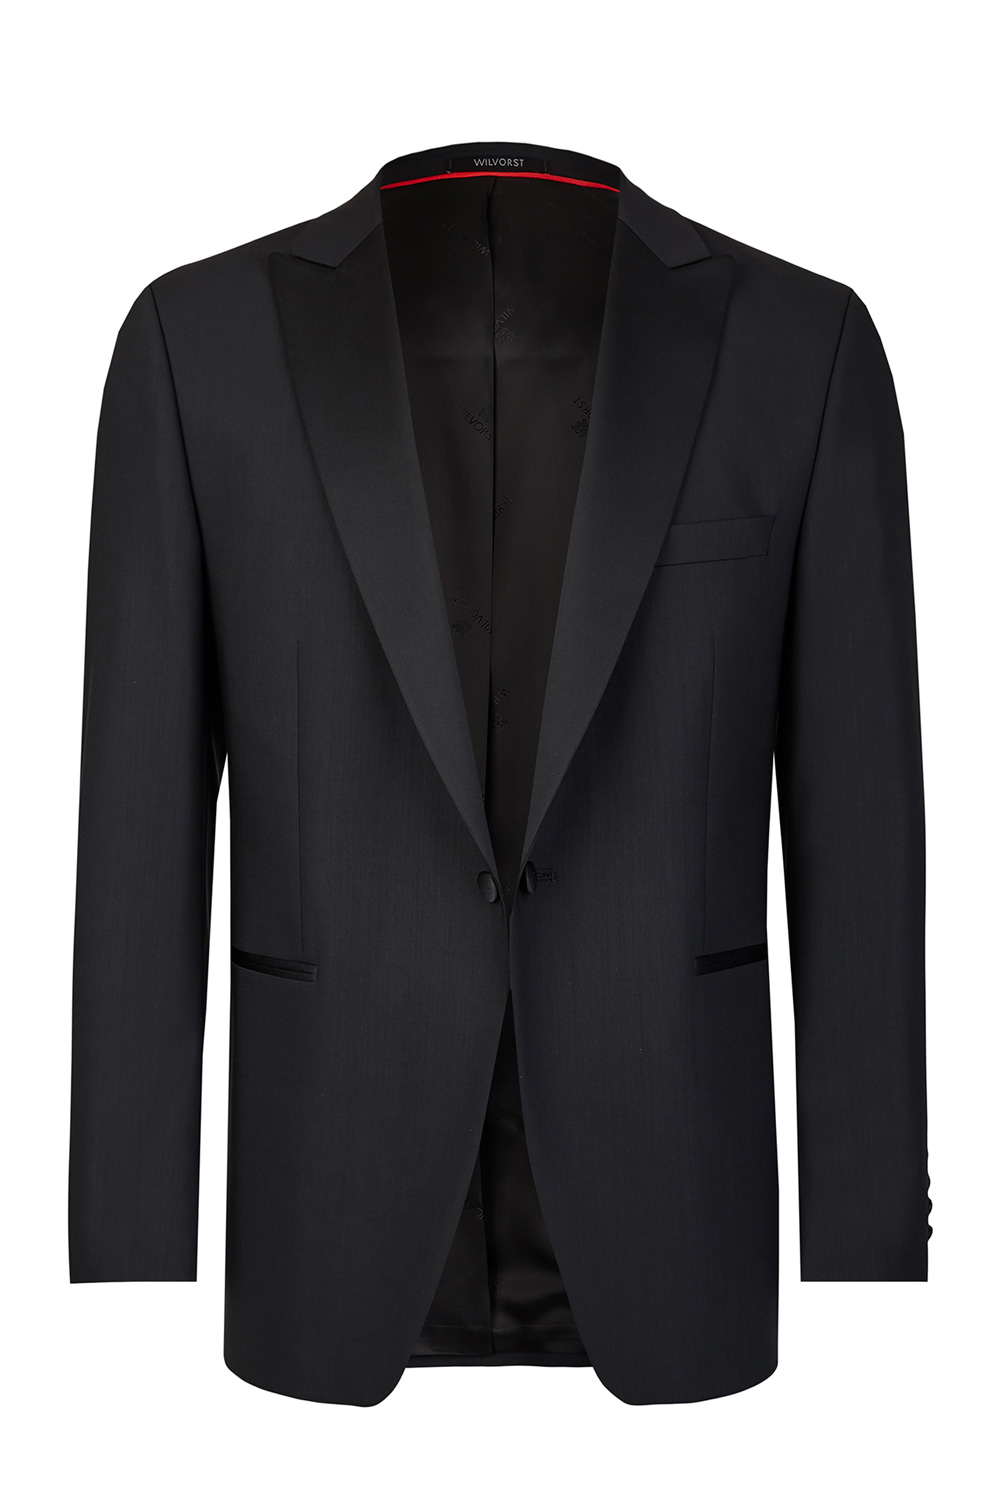 Black Tuxedo Slim Line Smoking Jacket